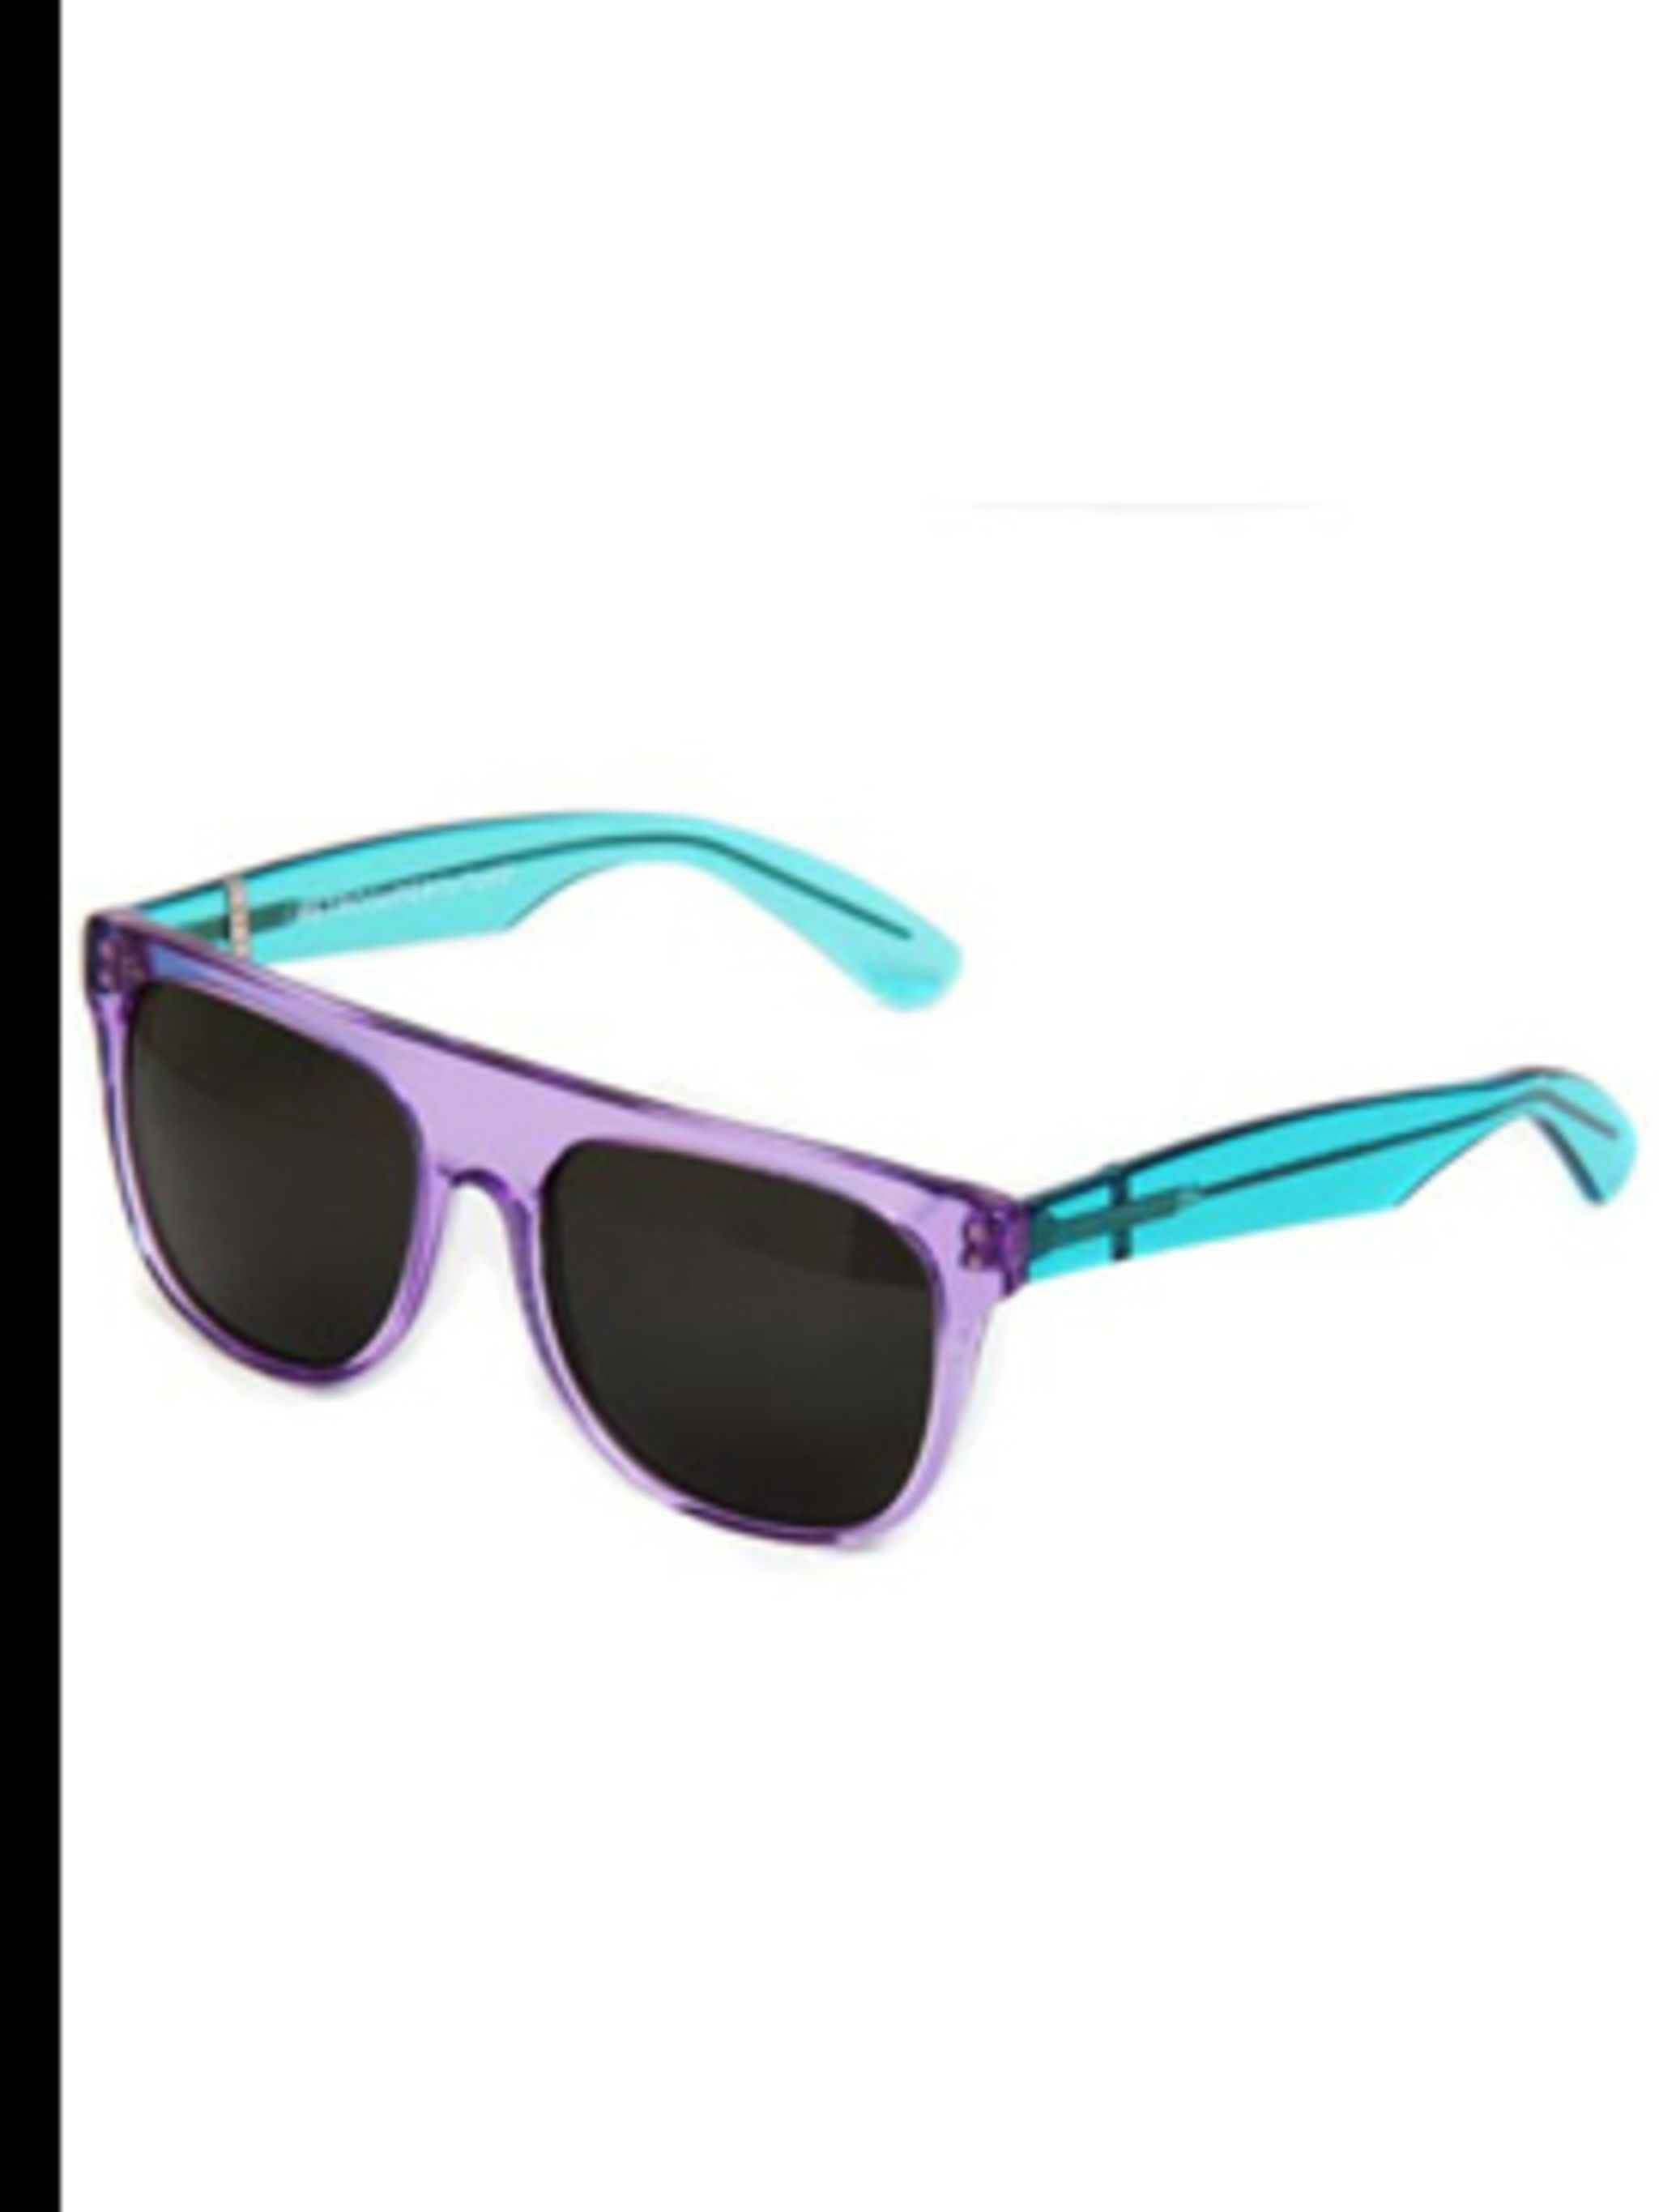 """<p>Sunglasses, £93, by Retrosuperfuture at <a href=""""http://www.ninaandlola.com/retrosuperfuture-sunglasses/retrosuperfuture-sunglasses-turquoise-with-pink-arms-and-zeiss-lenses.html"""">www.ninaandlola.com</a></p>"""